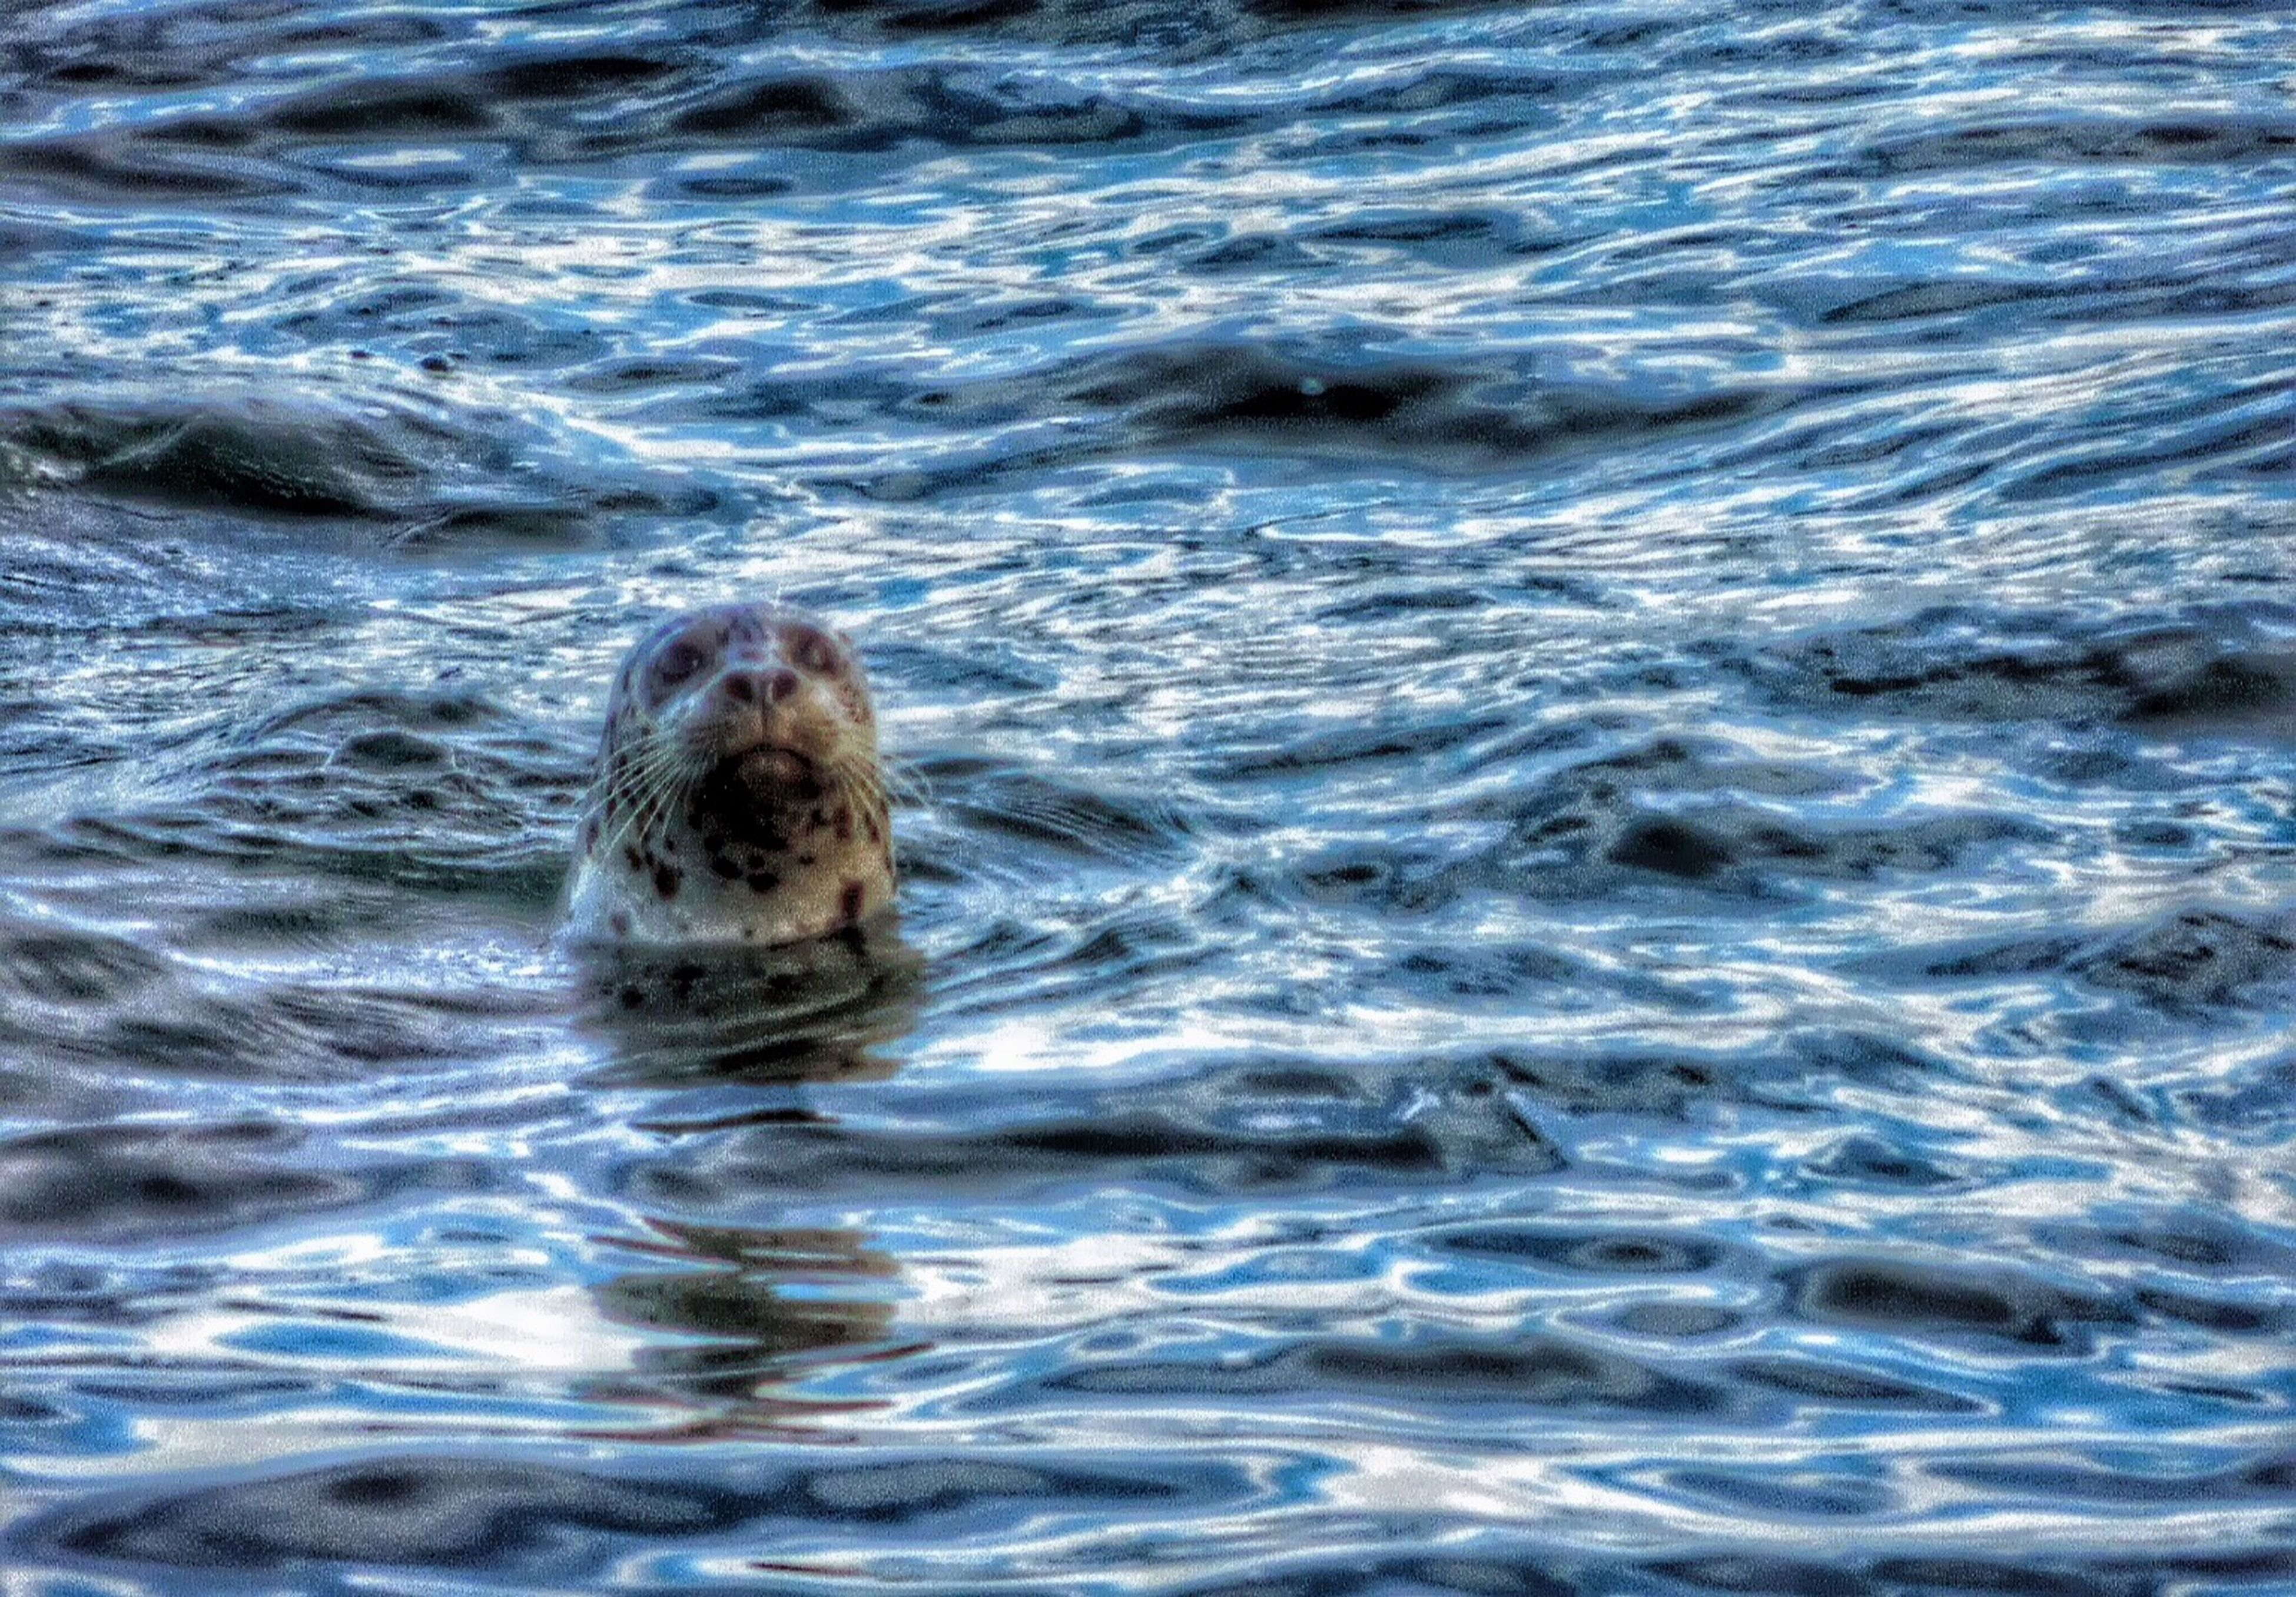 water, animal themes, one animal, waterfront, swimming, mammal, animals in the wild, wildlife, sea, rippled, dog, nature, splashing, pets, high angle view, day, motion, outdoors, two animals, no people